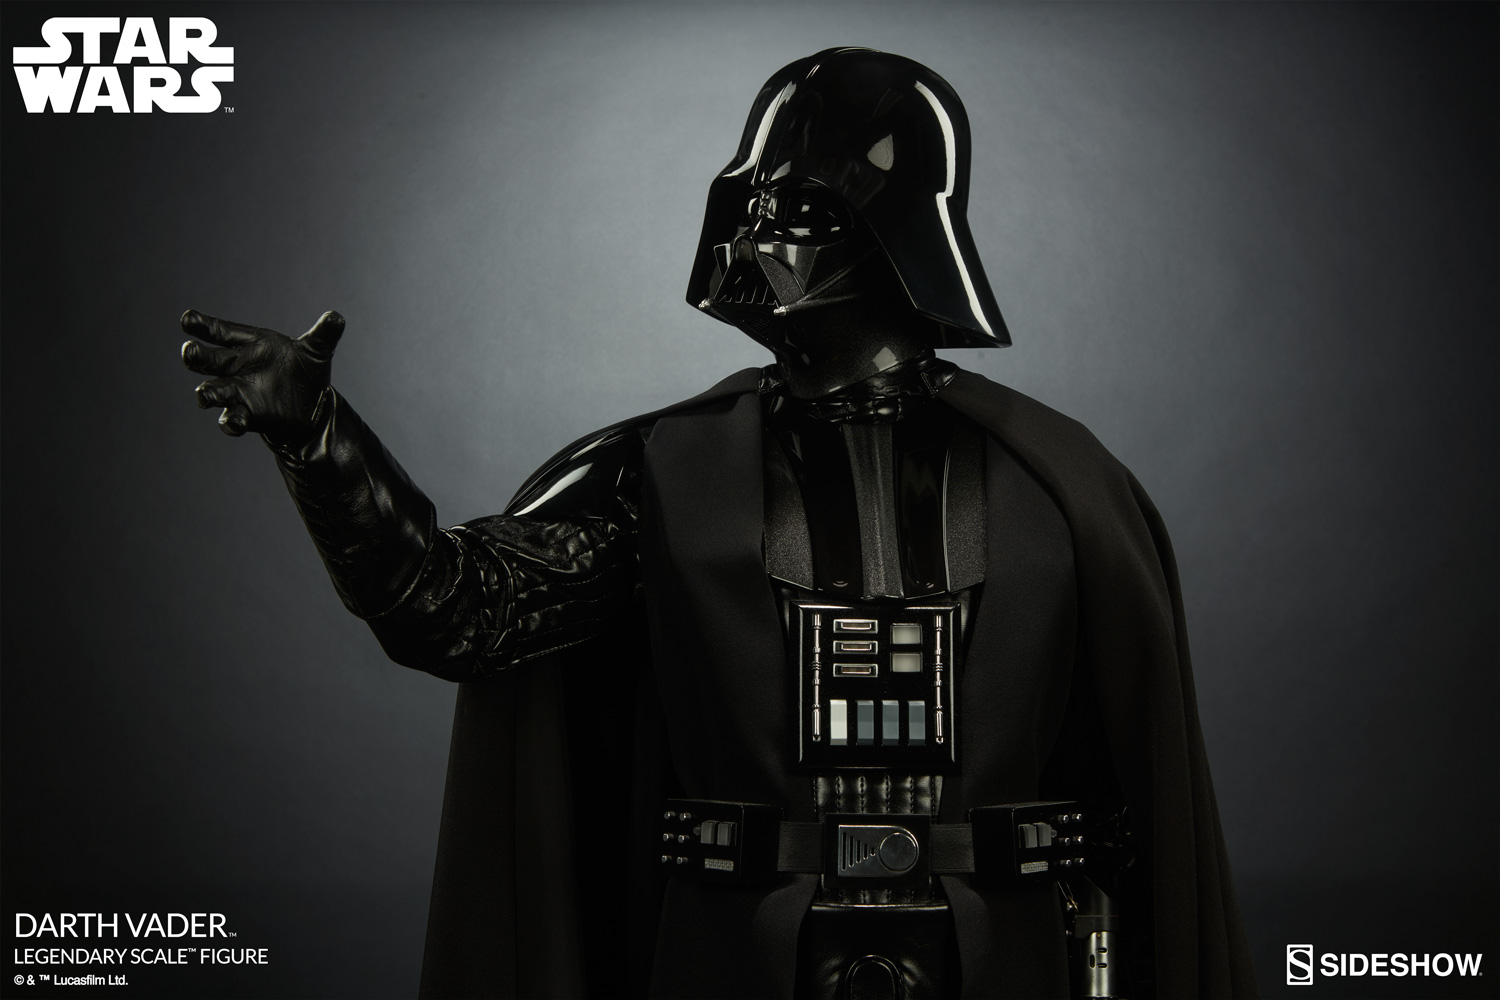 star wars darth vader legendary scale tm figure by sideshow sideshow collectibles. Black Bedroom Furniture Sets. Home Design Ideas